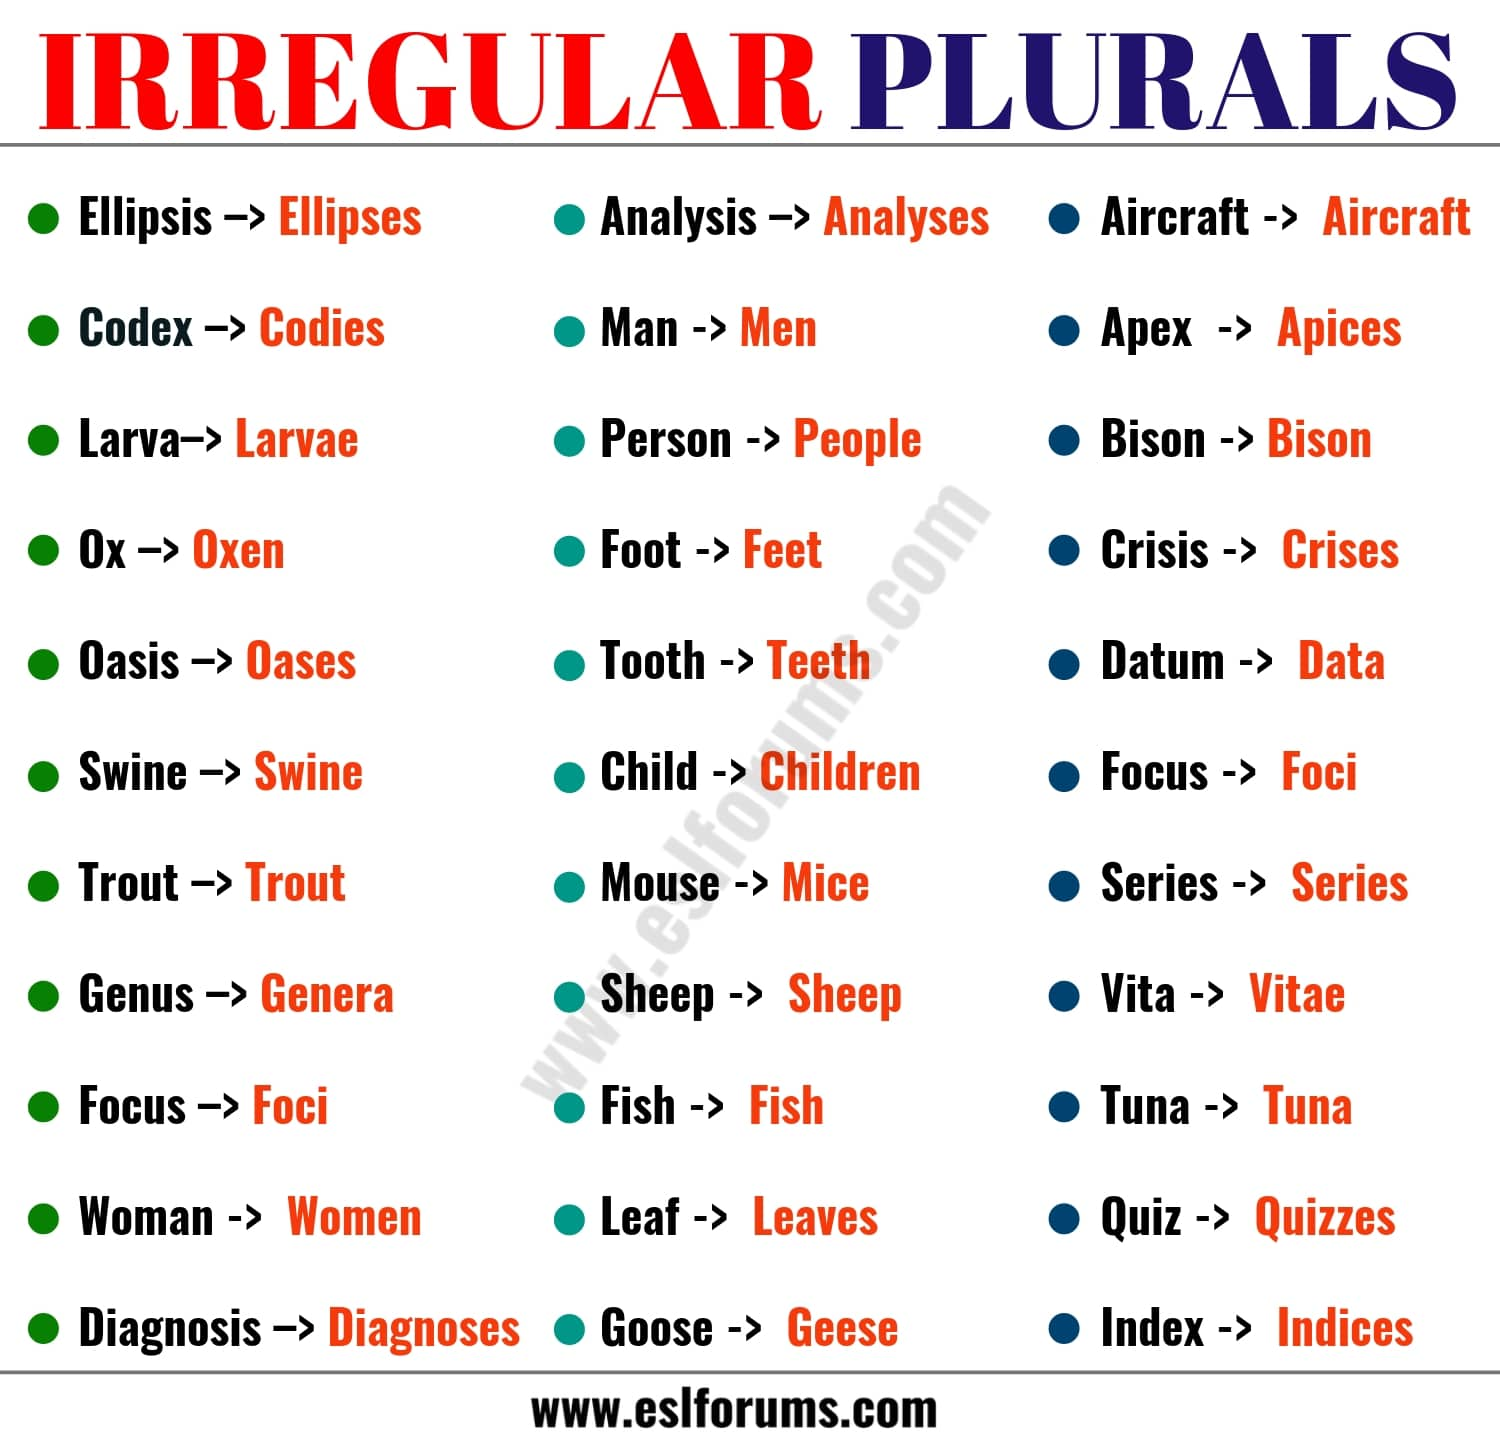 list of 36 important irregular plural nouns in english